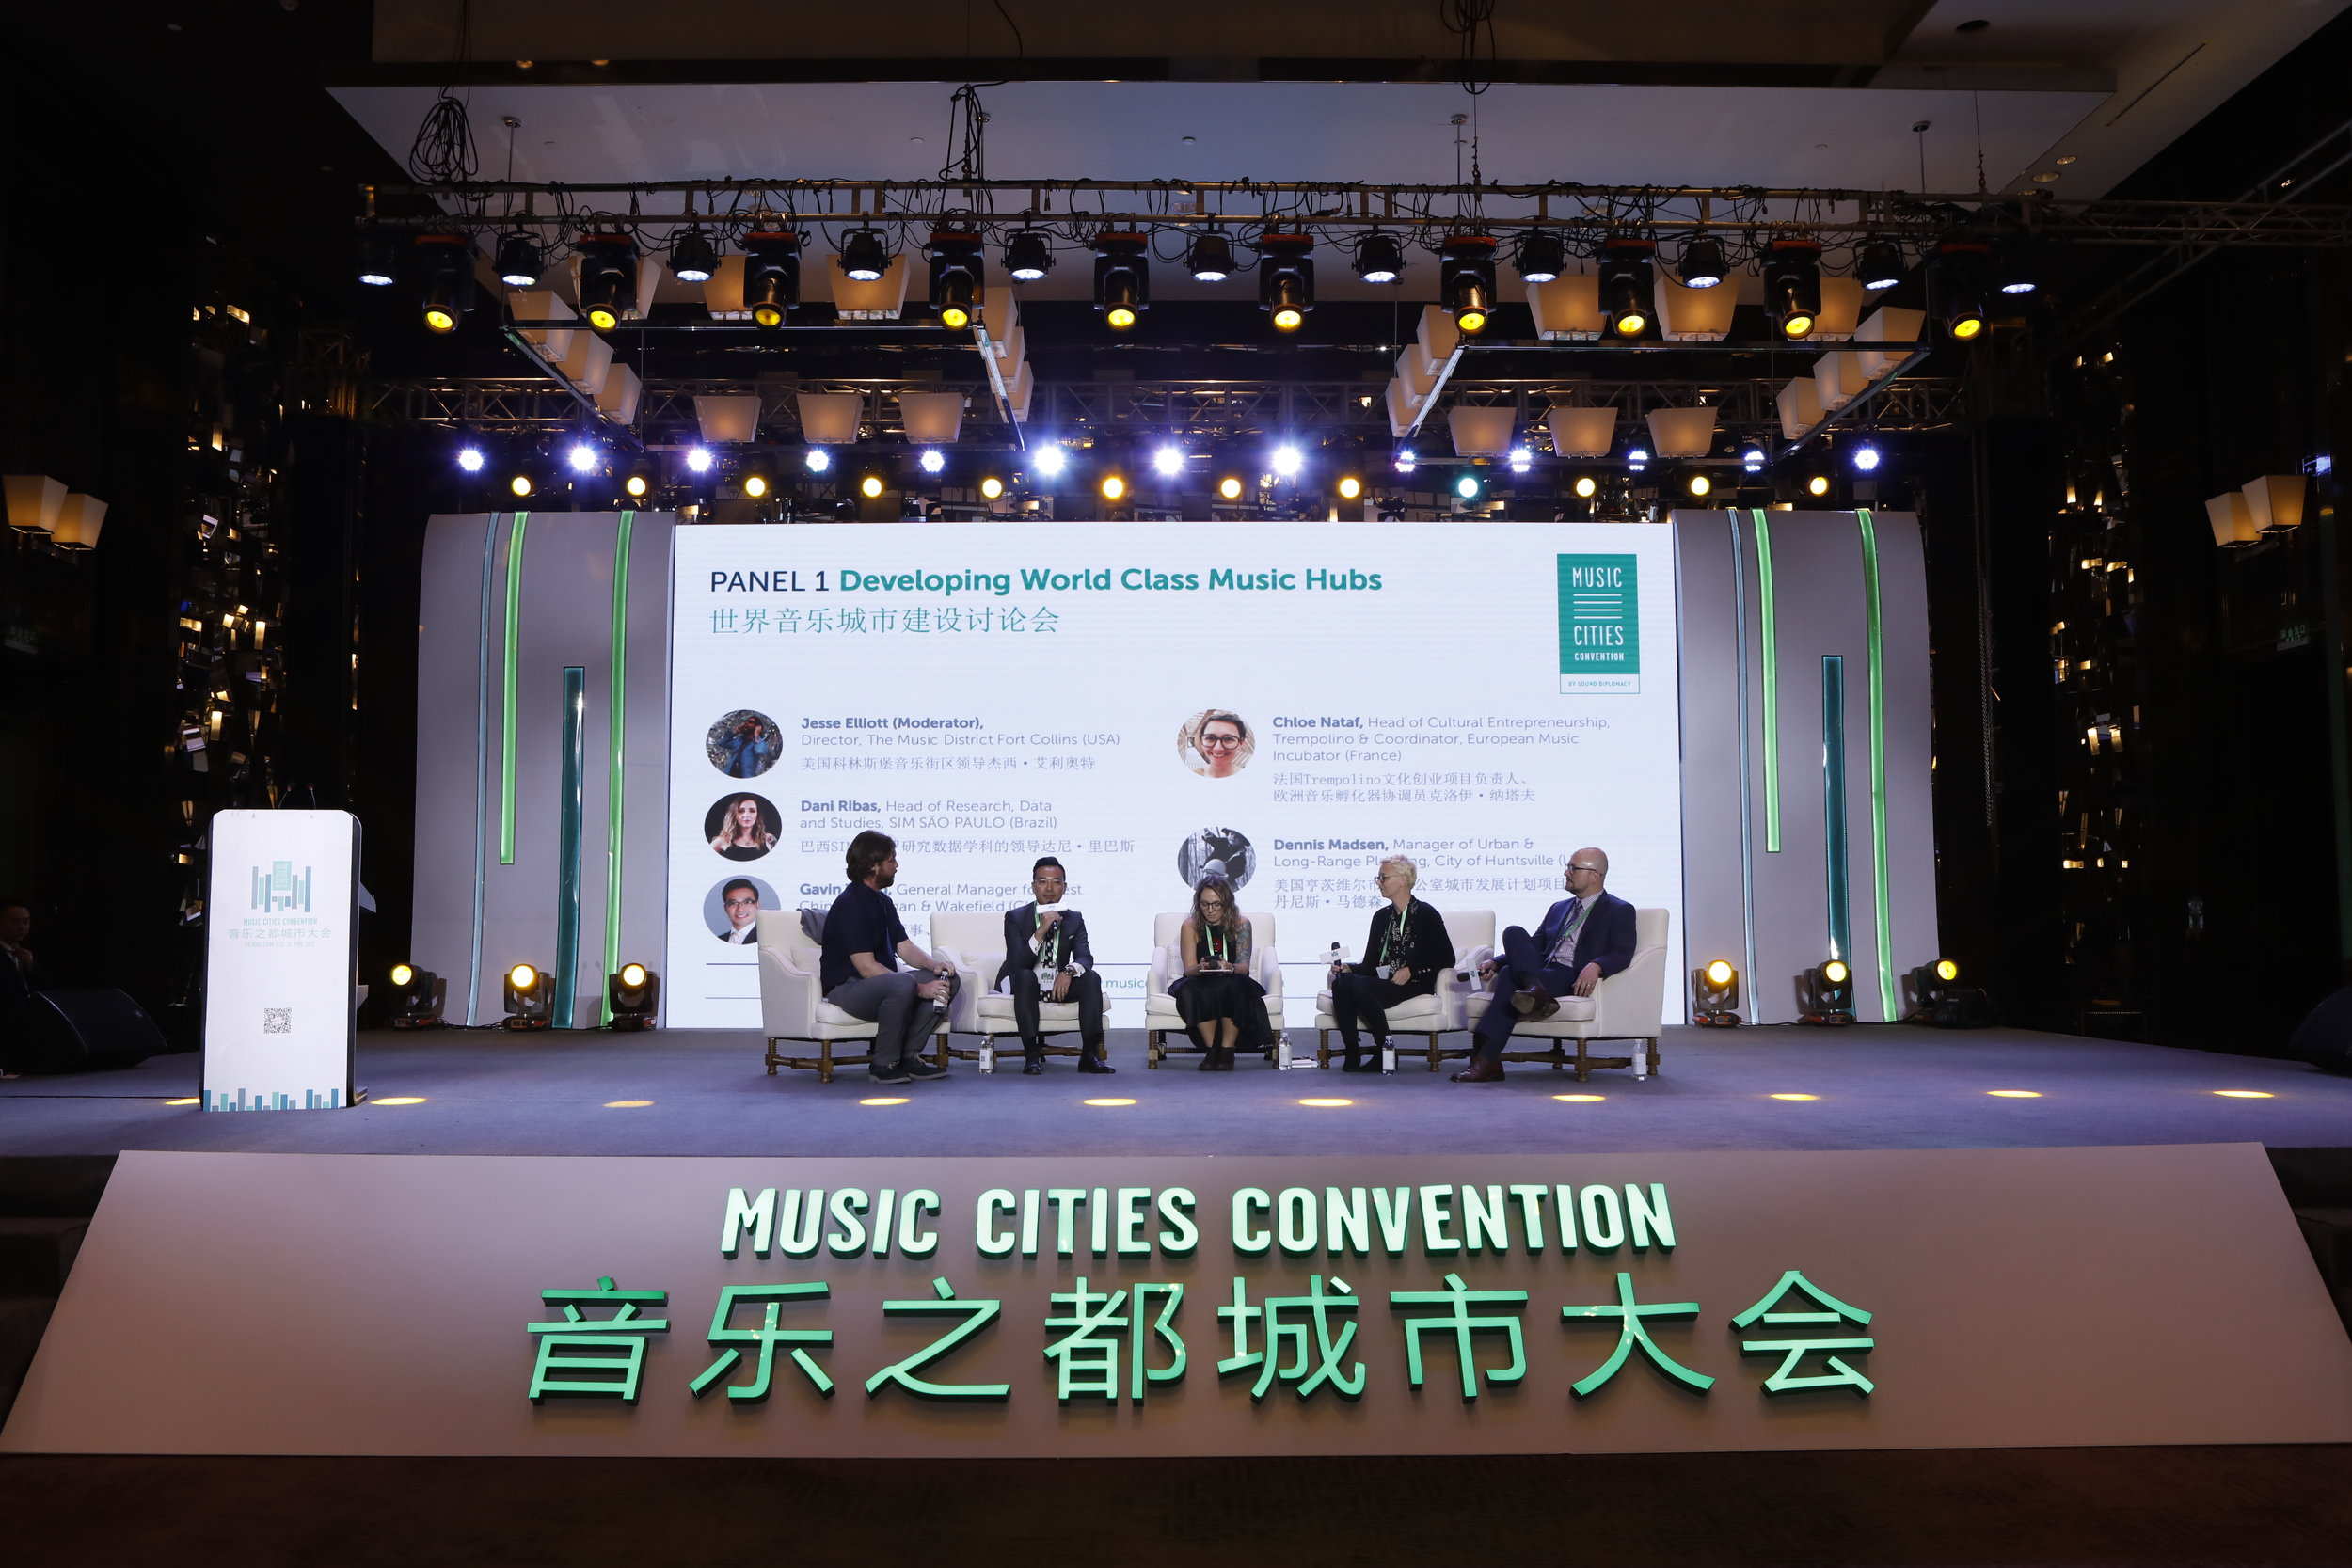 Music Cities Convention Chengdu held in April 2019.